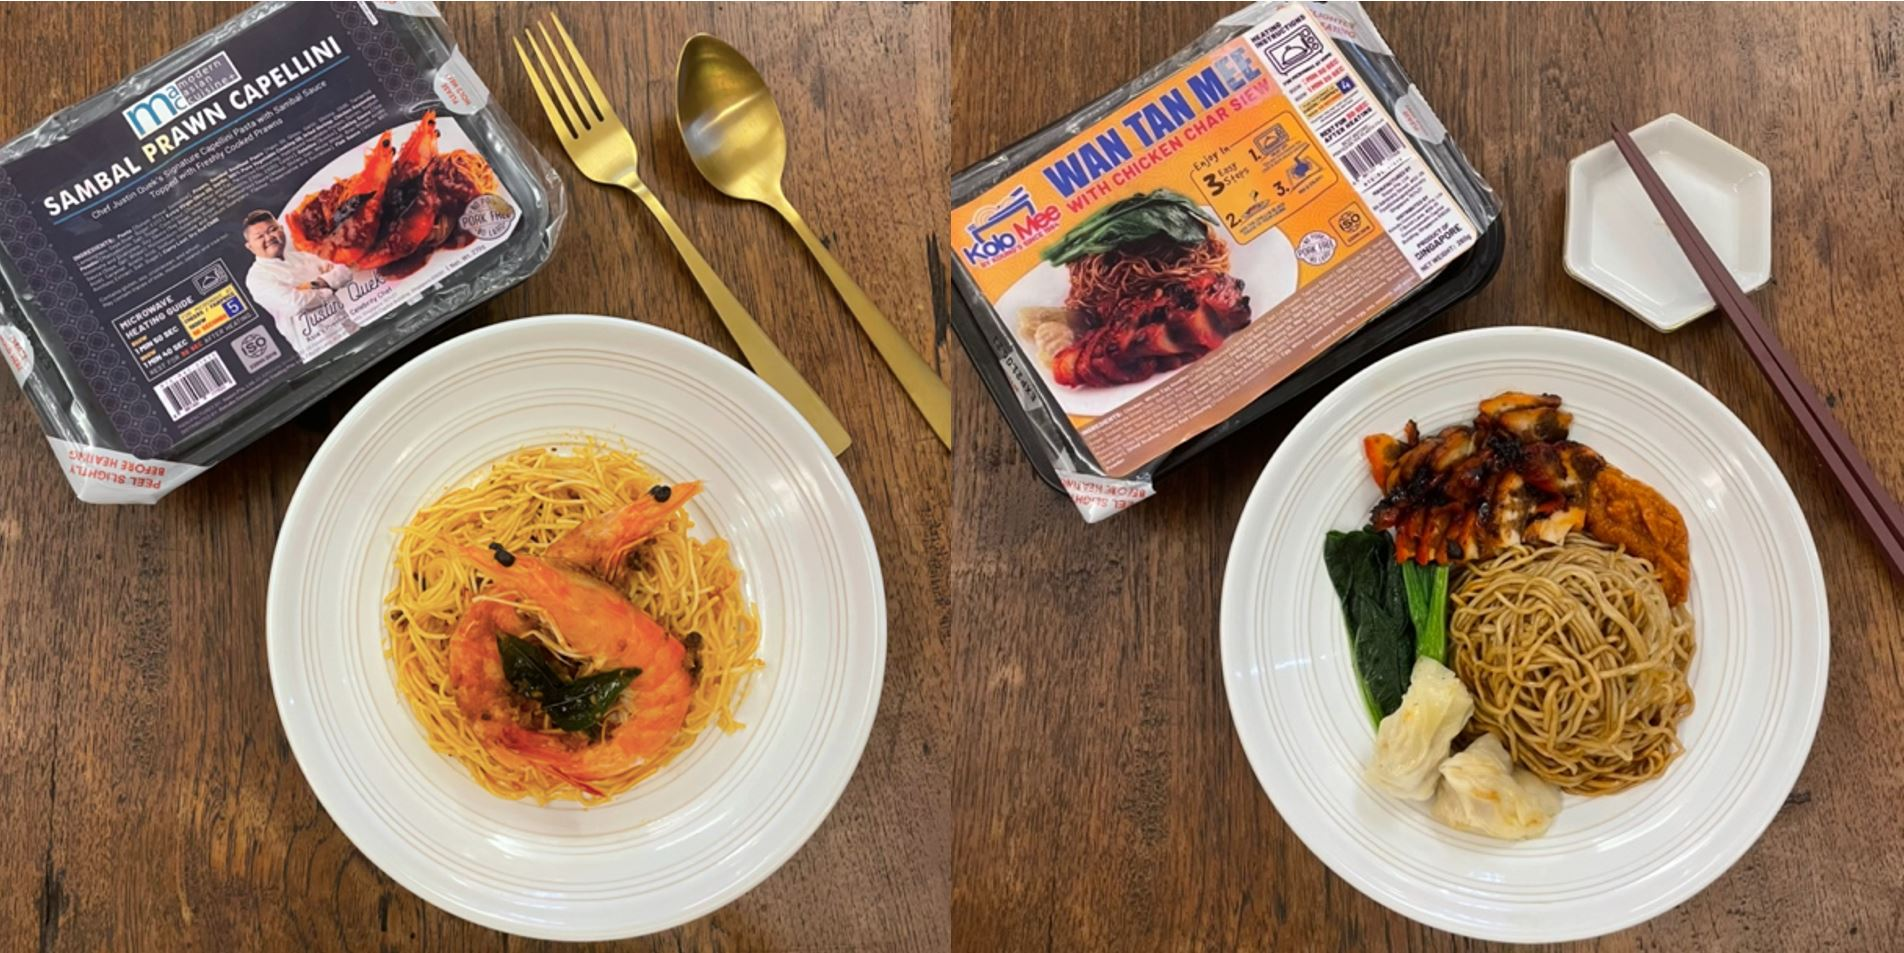 Michelin-starred Les Amis founder, Chef Justin Quek's premium ready-to-eat meals now exclusively available at Cheers & FairPrice Xpress